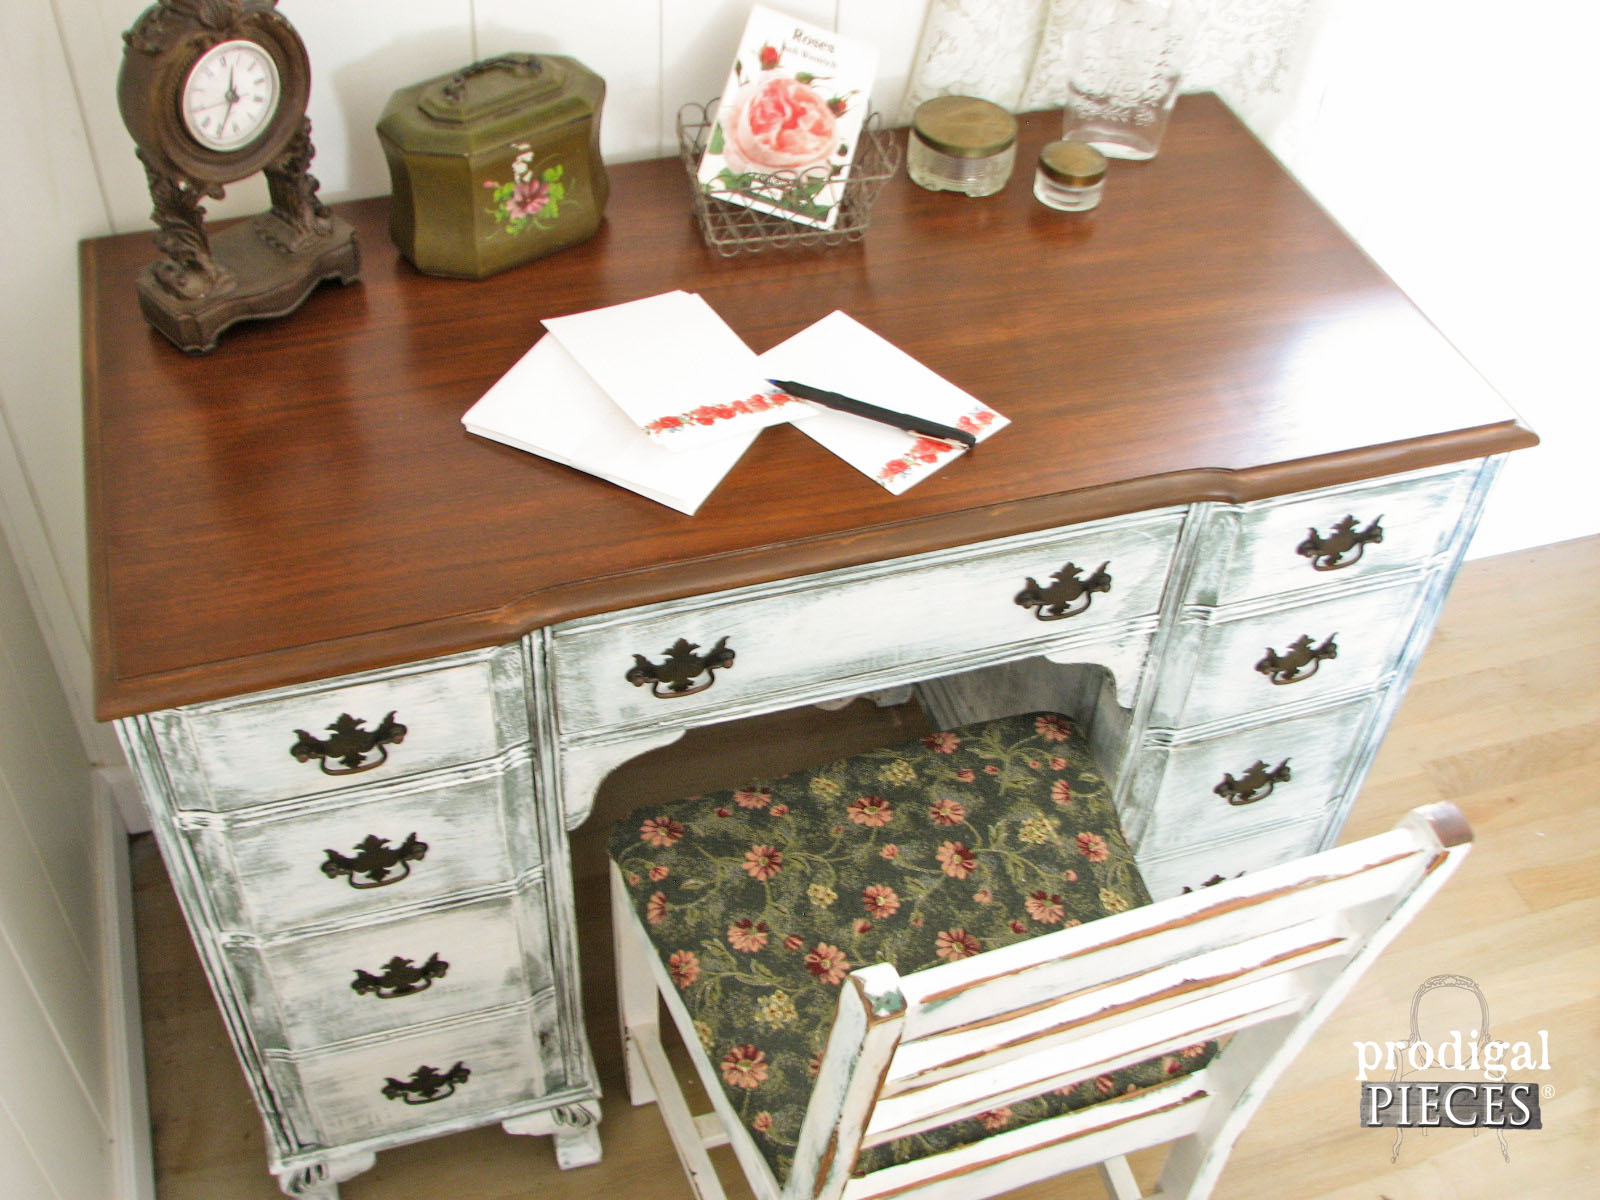 2 Year Blogiversary Giveaway to WIN this Desk Set + Shipped FREE by Prodigal Pieces www.prodigalpieces.com #prodigalpieces